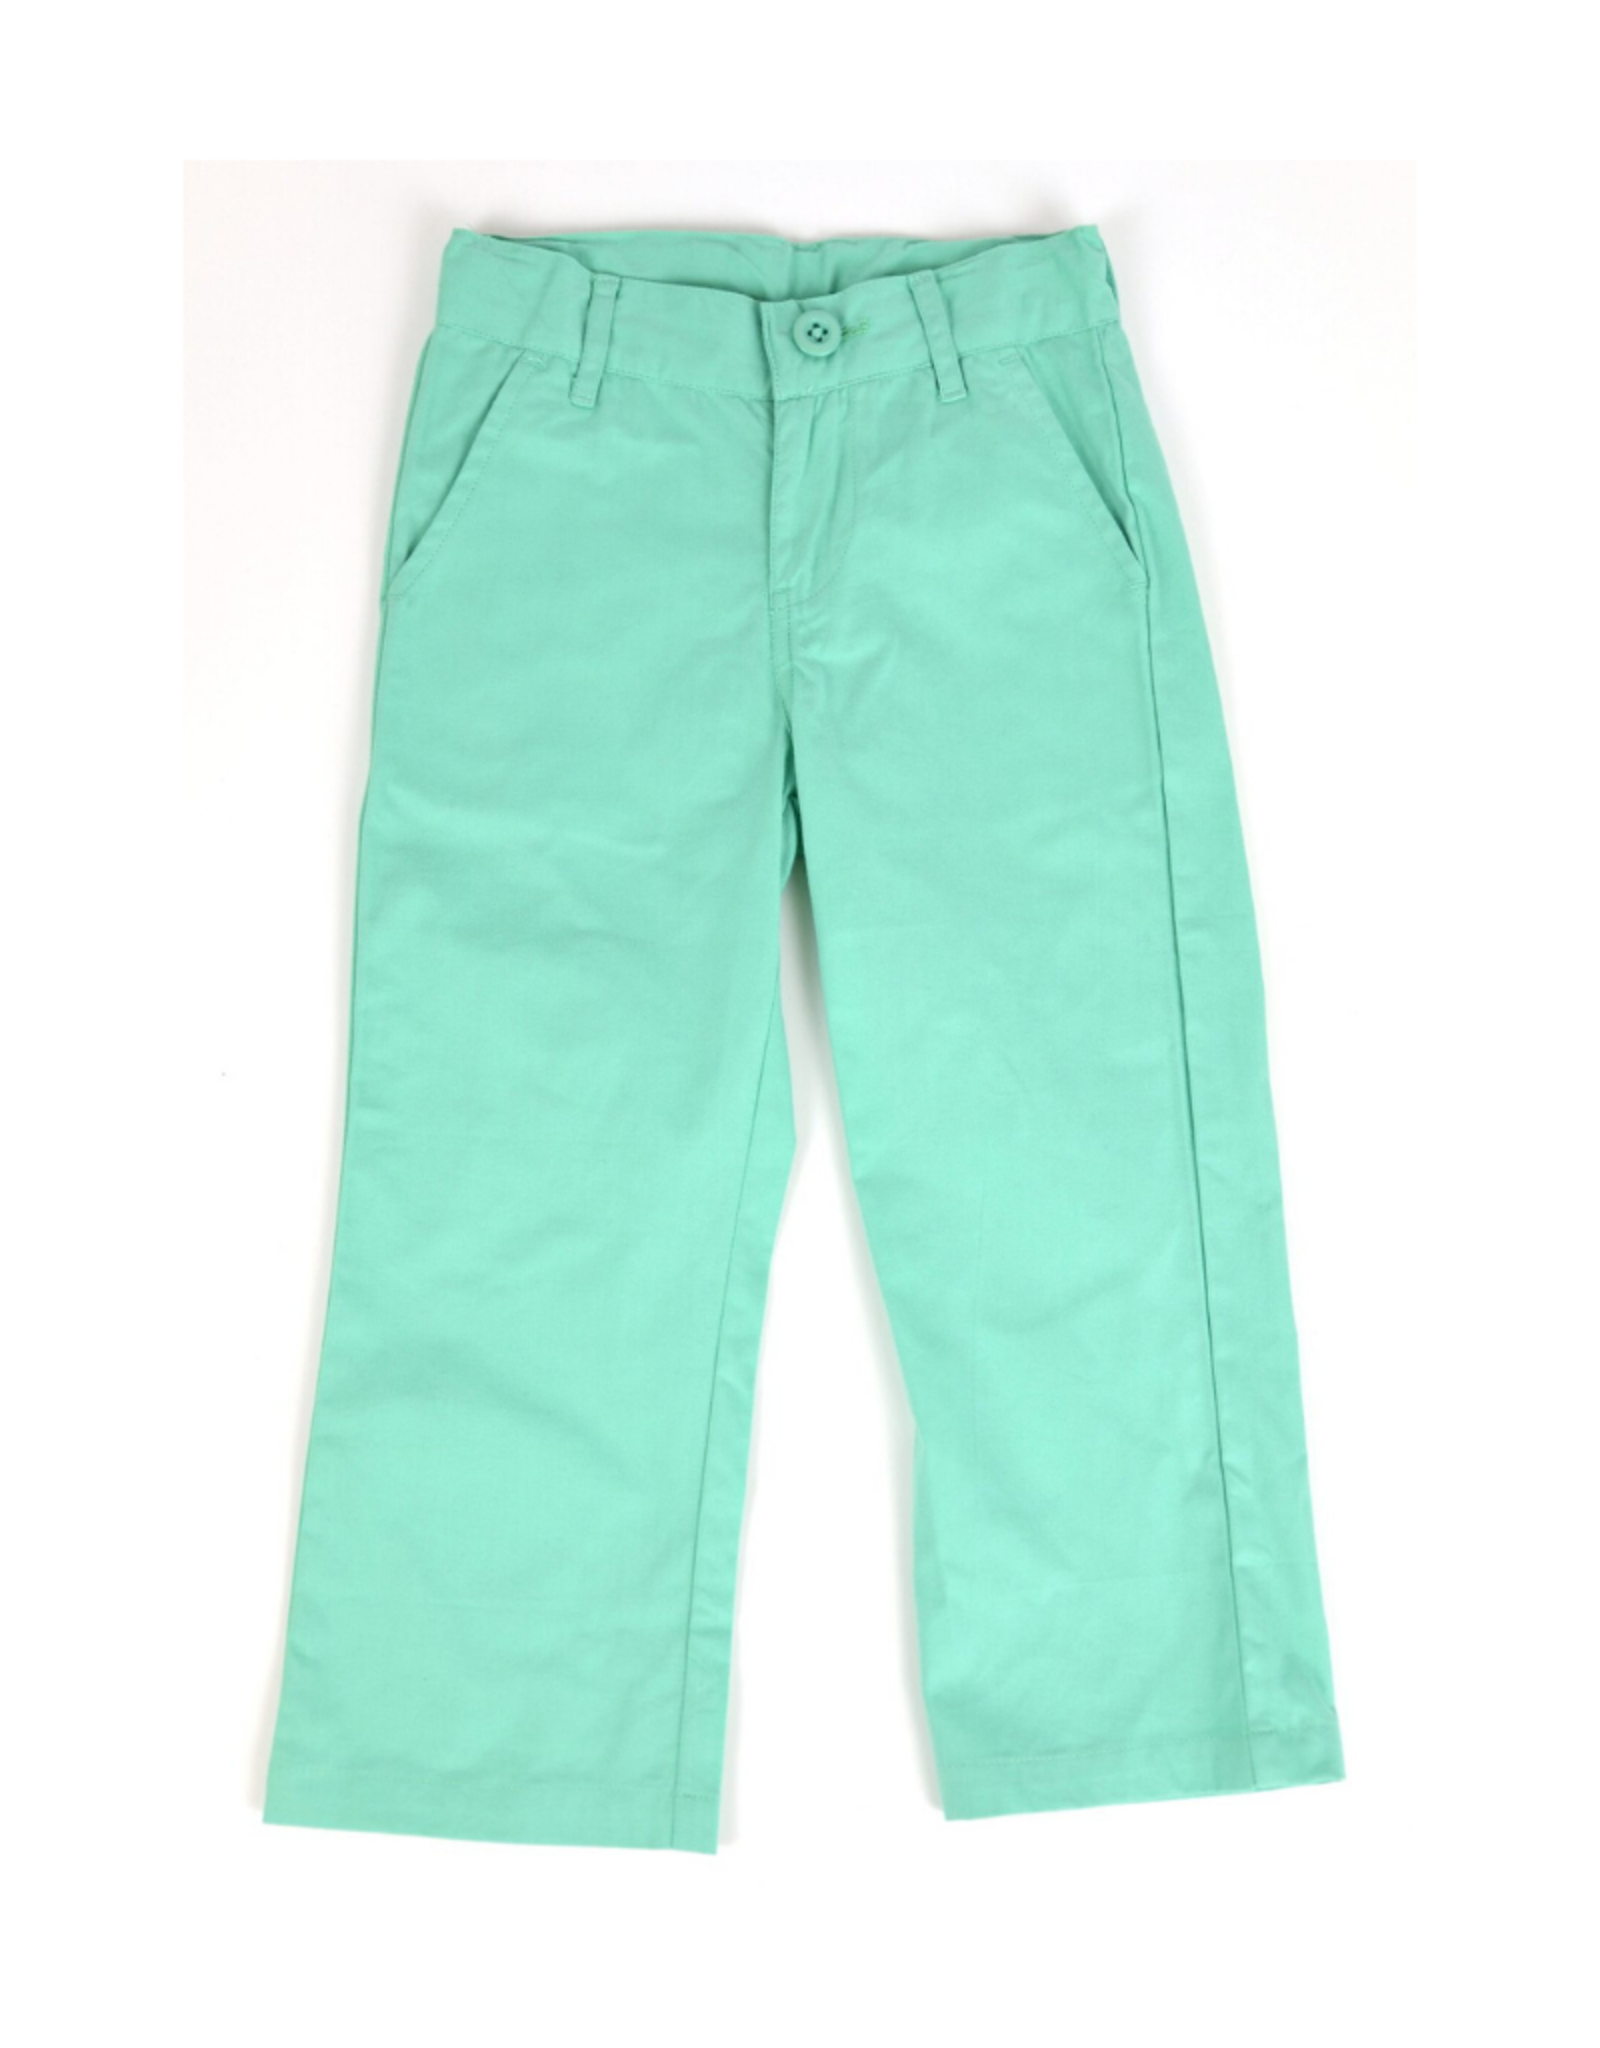 SouthBound Opal Pants